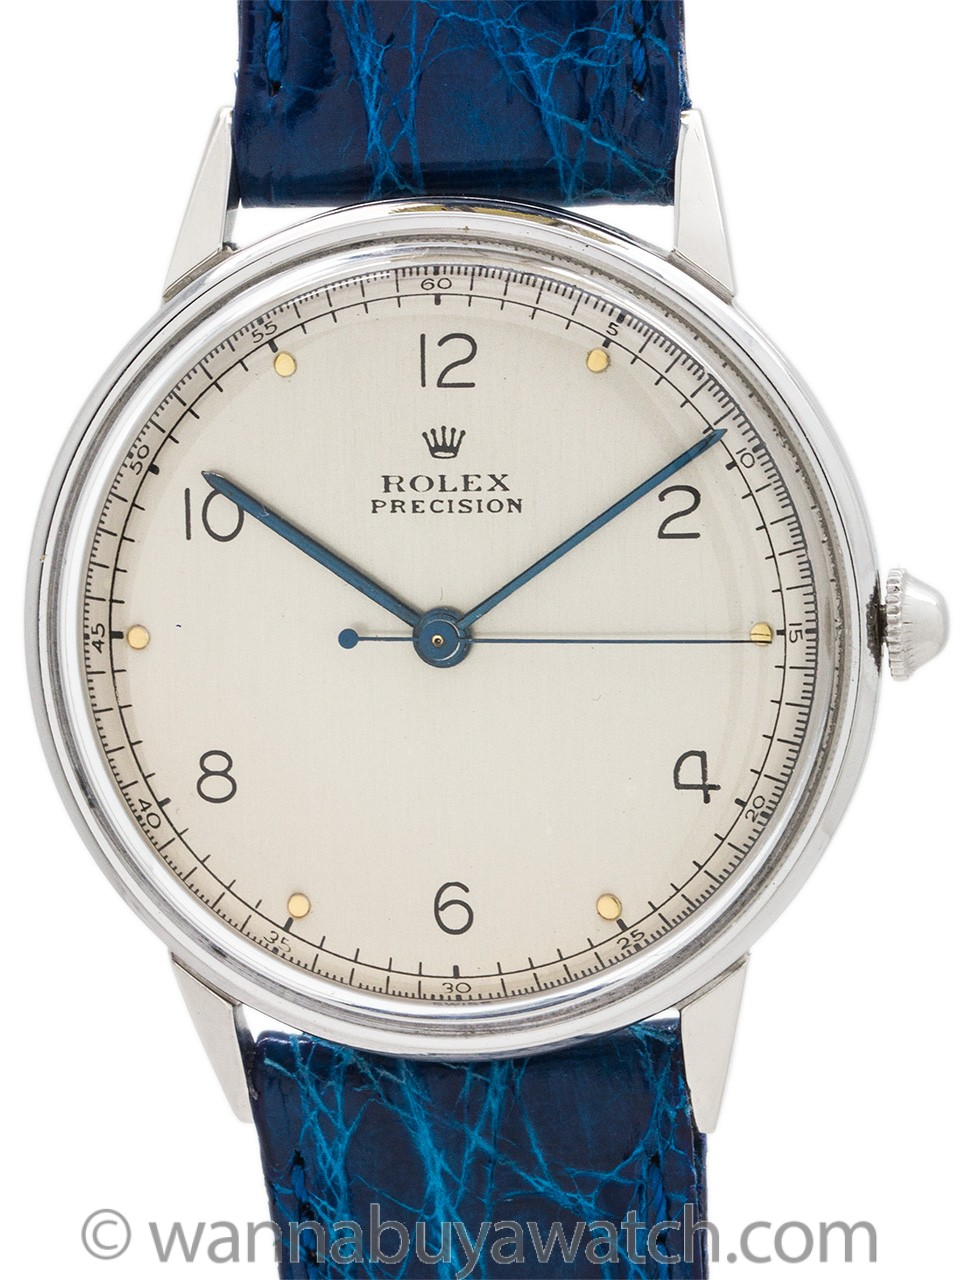 Rolex ref 4363 Manual Wind Dress Model circa 1950's